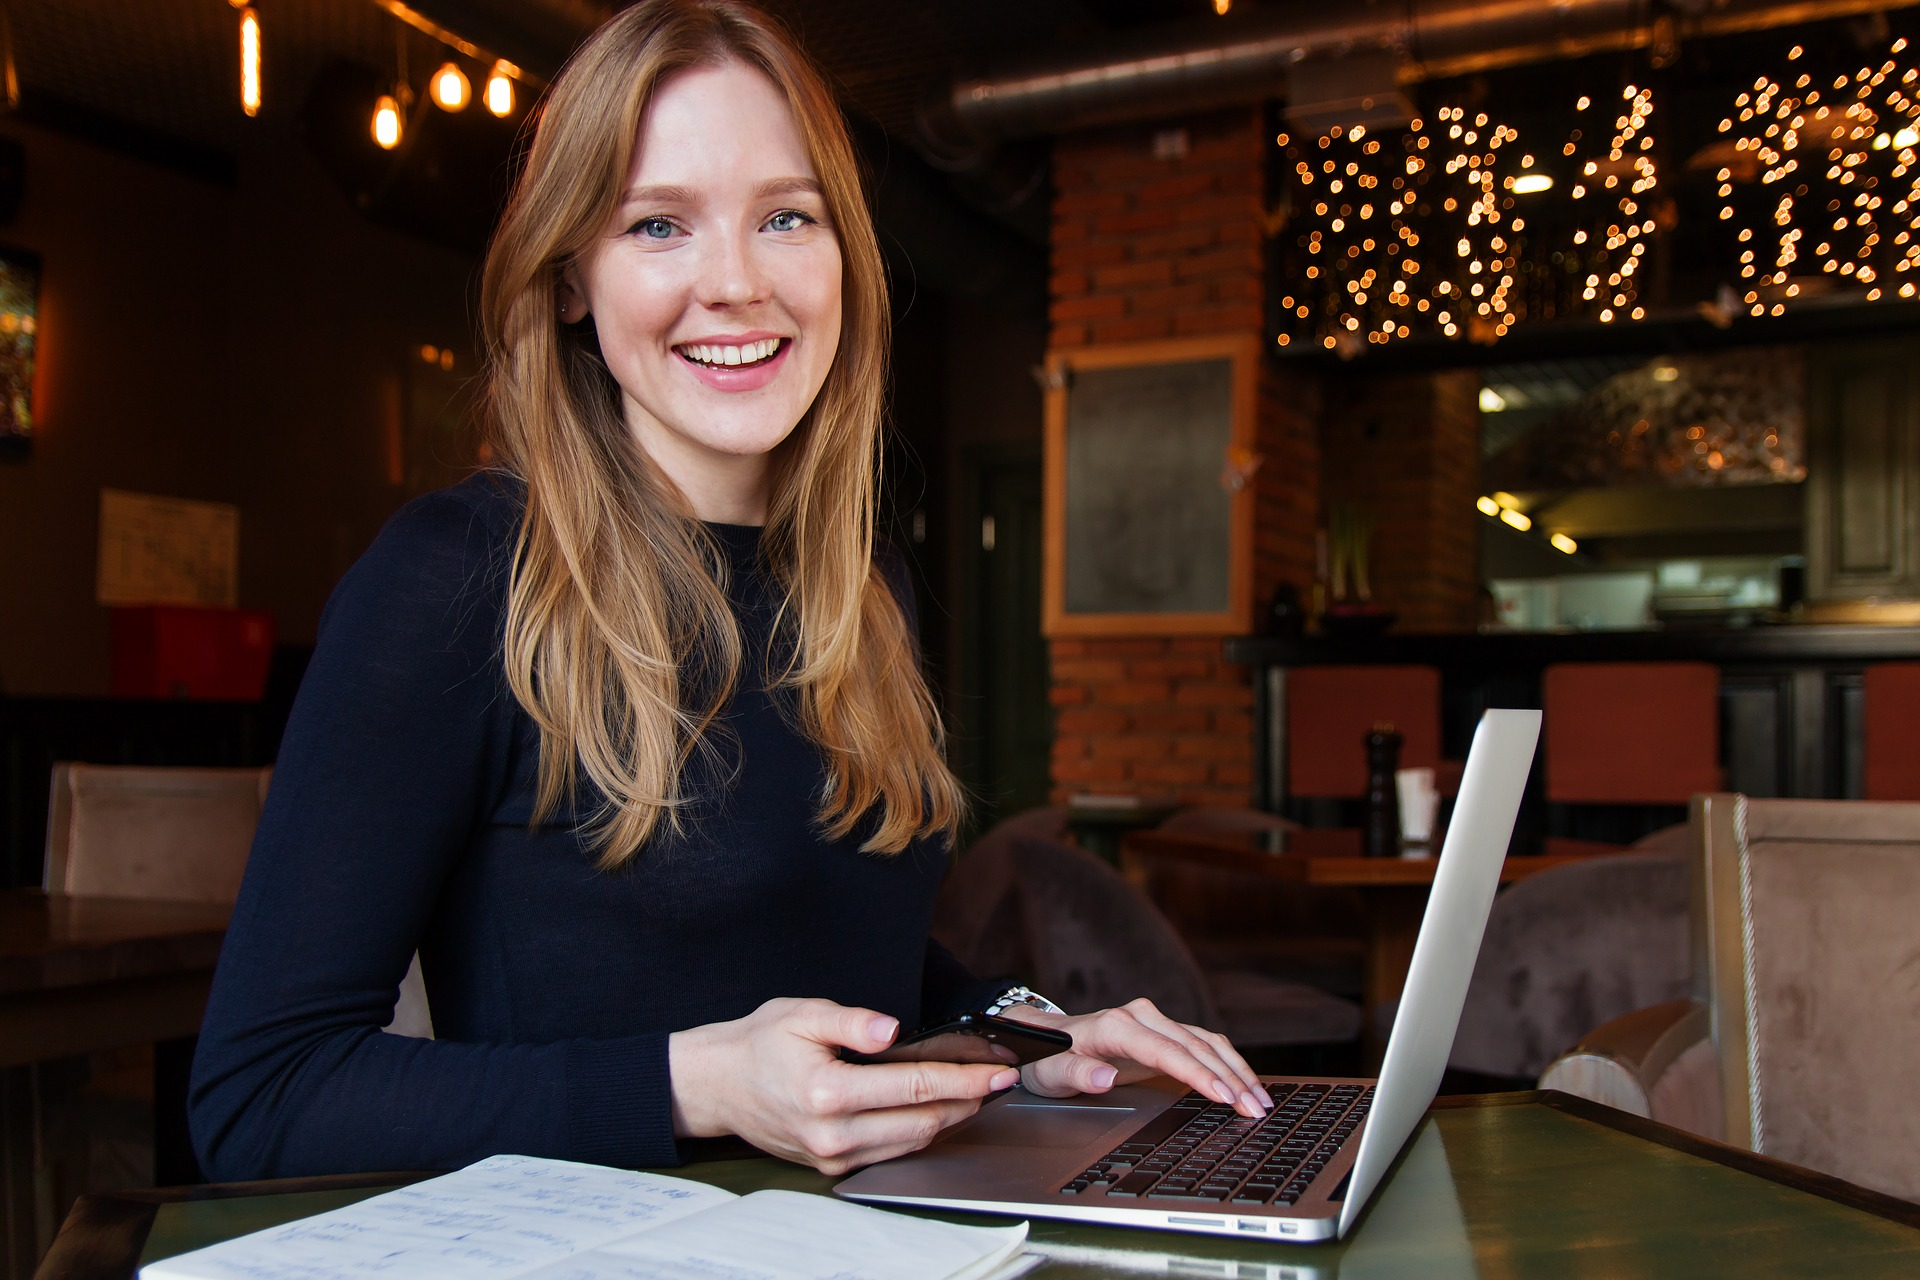 A woman with a laptop, smiling